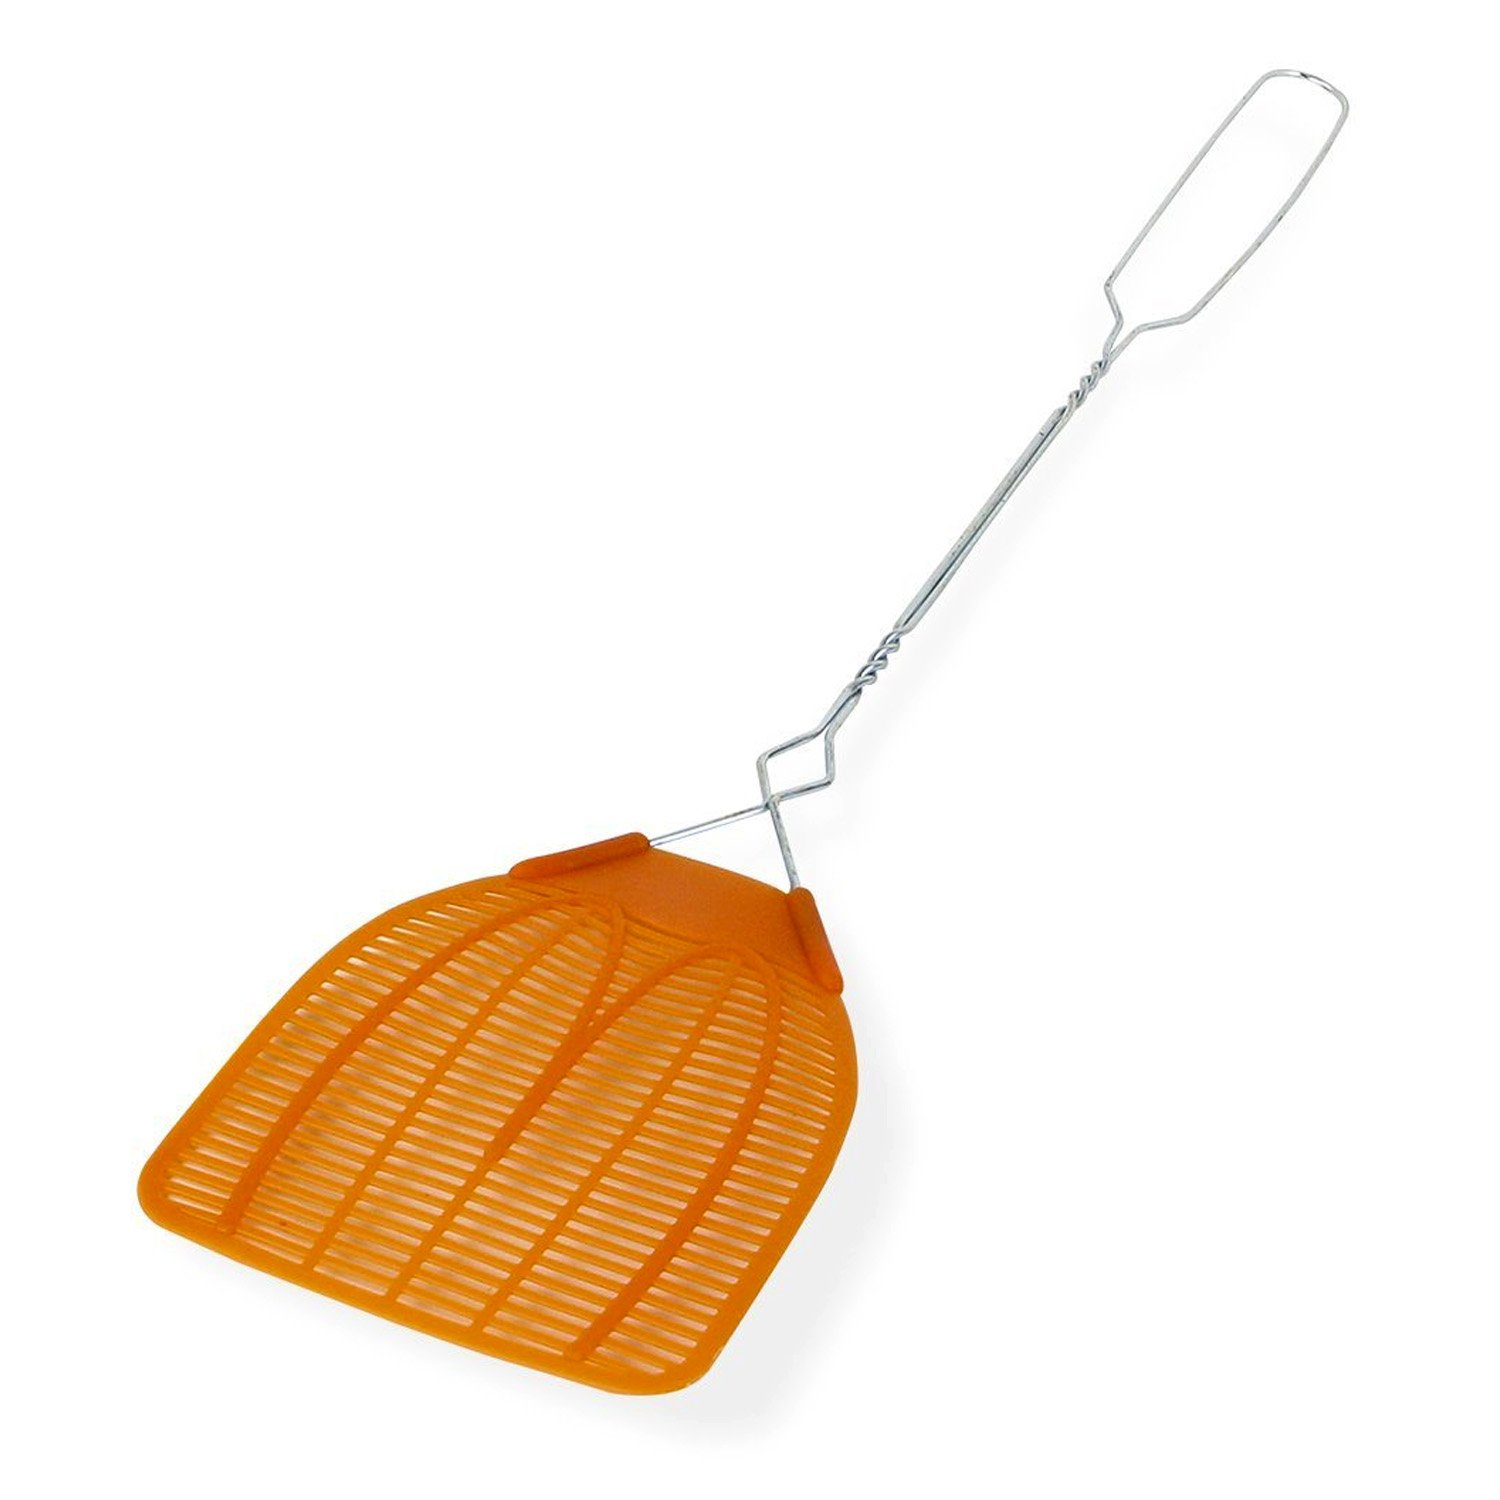 BugKwikZap 2PK - Metal Handle Hand Fly Swatters